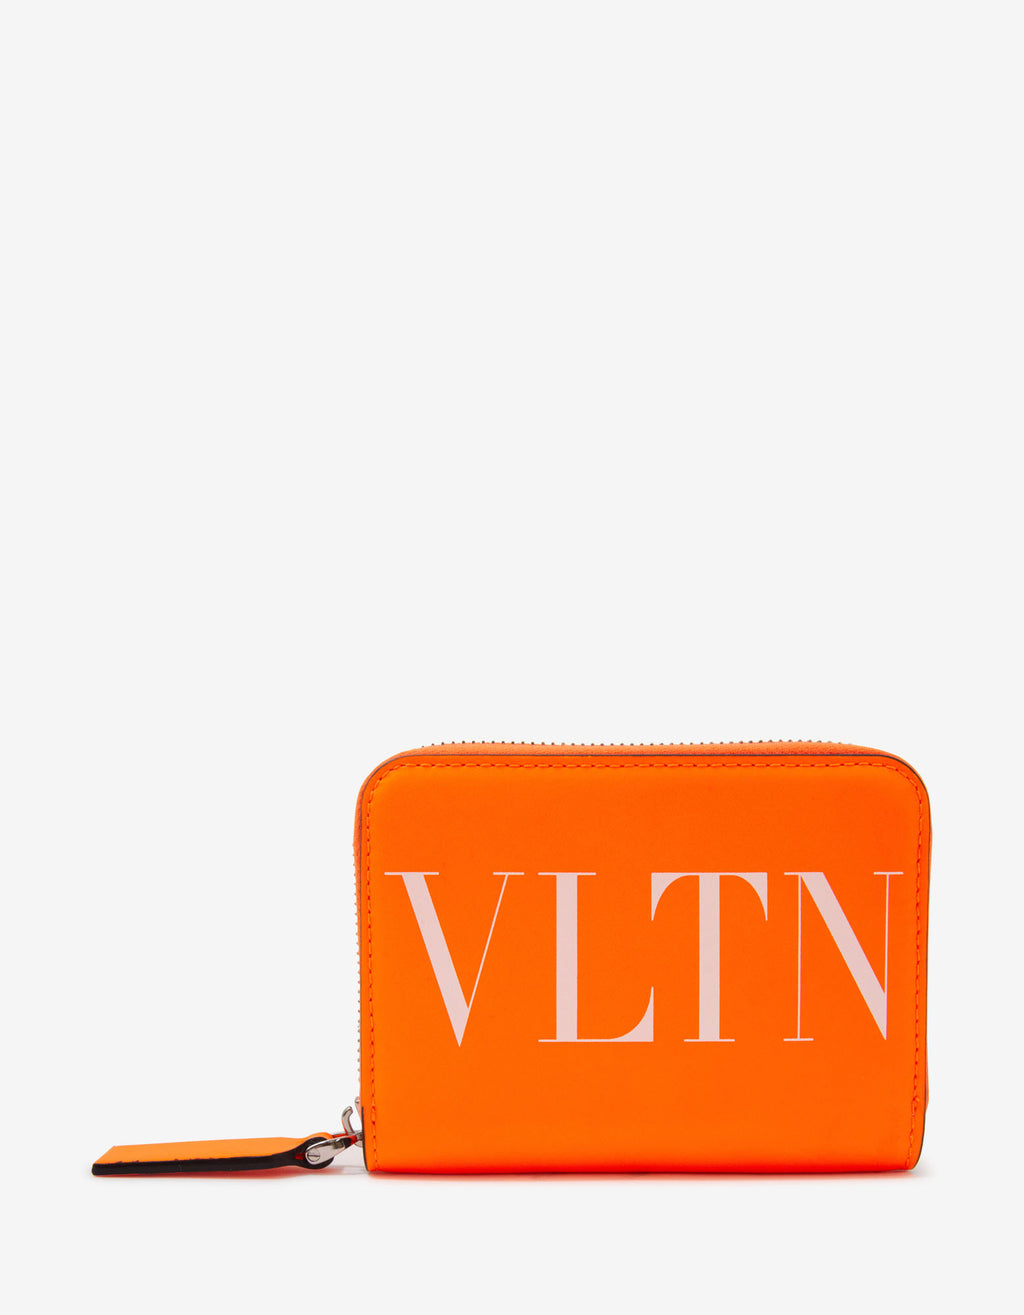 Neon Orange VLTN Wallet with Neck Strap